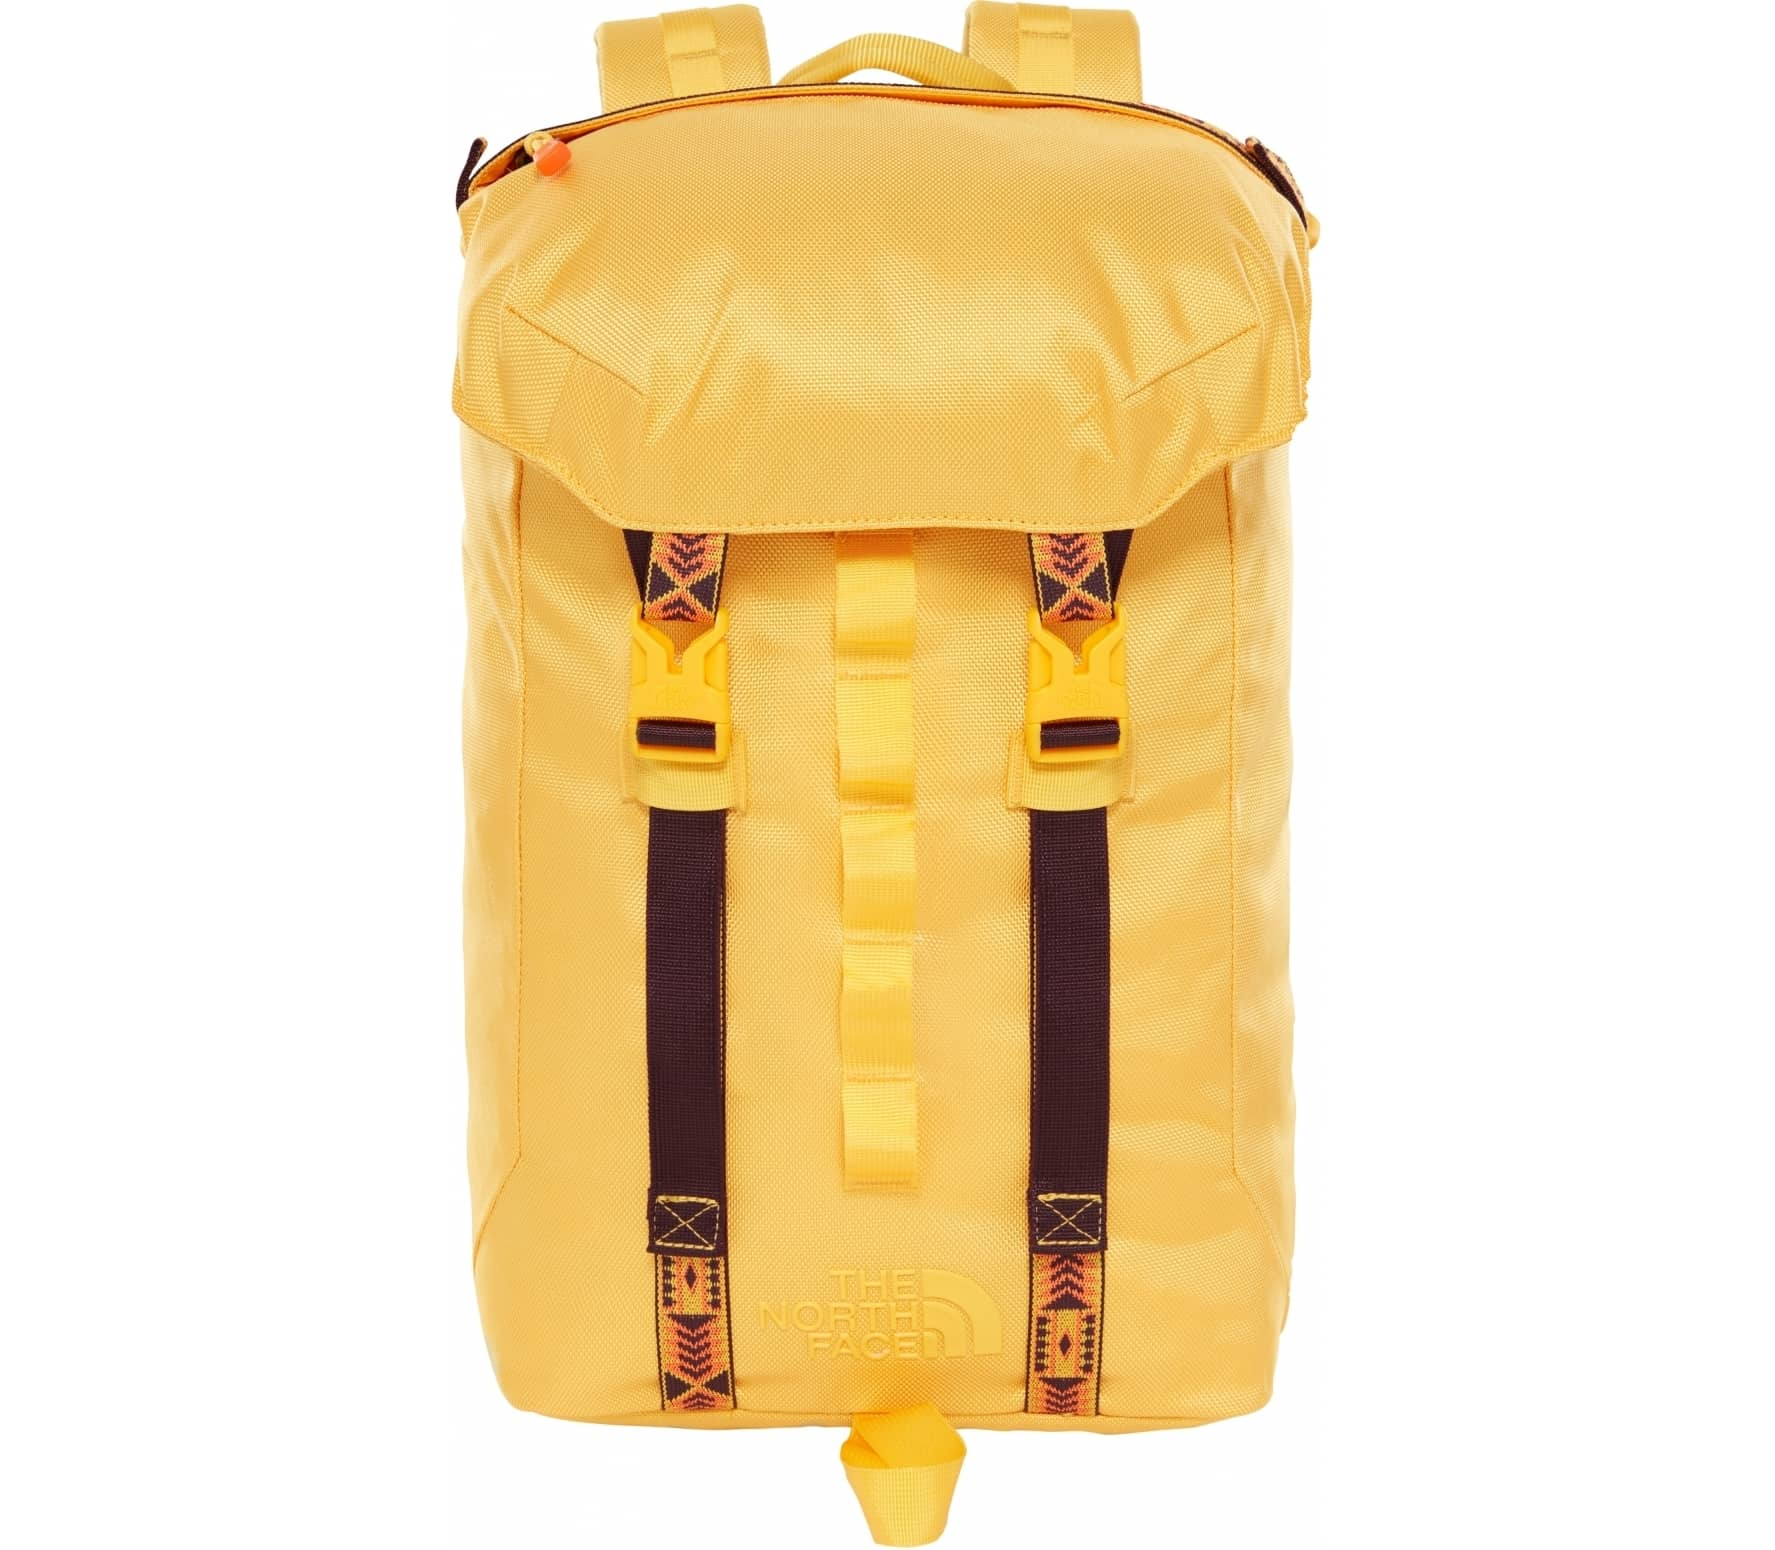 Ruck Online Shop : the north face lineage ruck 23 l daypack unisex yellow buy it at the keller sports online shop ~ A.2002-acura-tl-radio.info Haus und Dekorationen